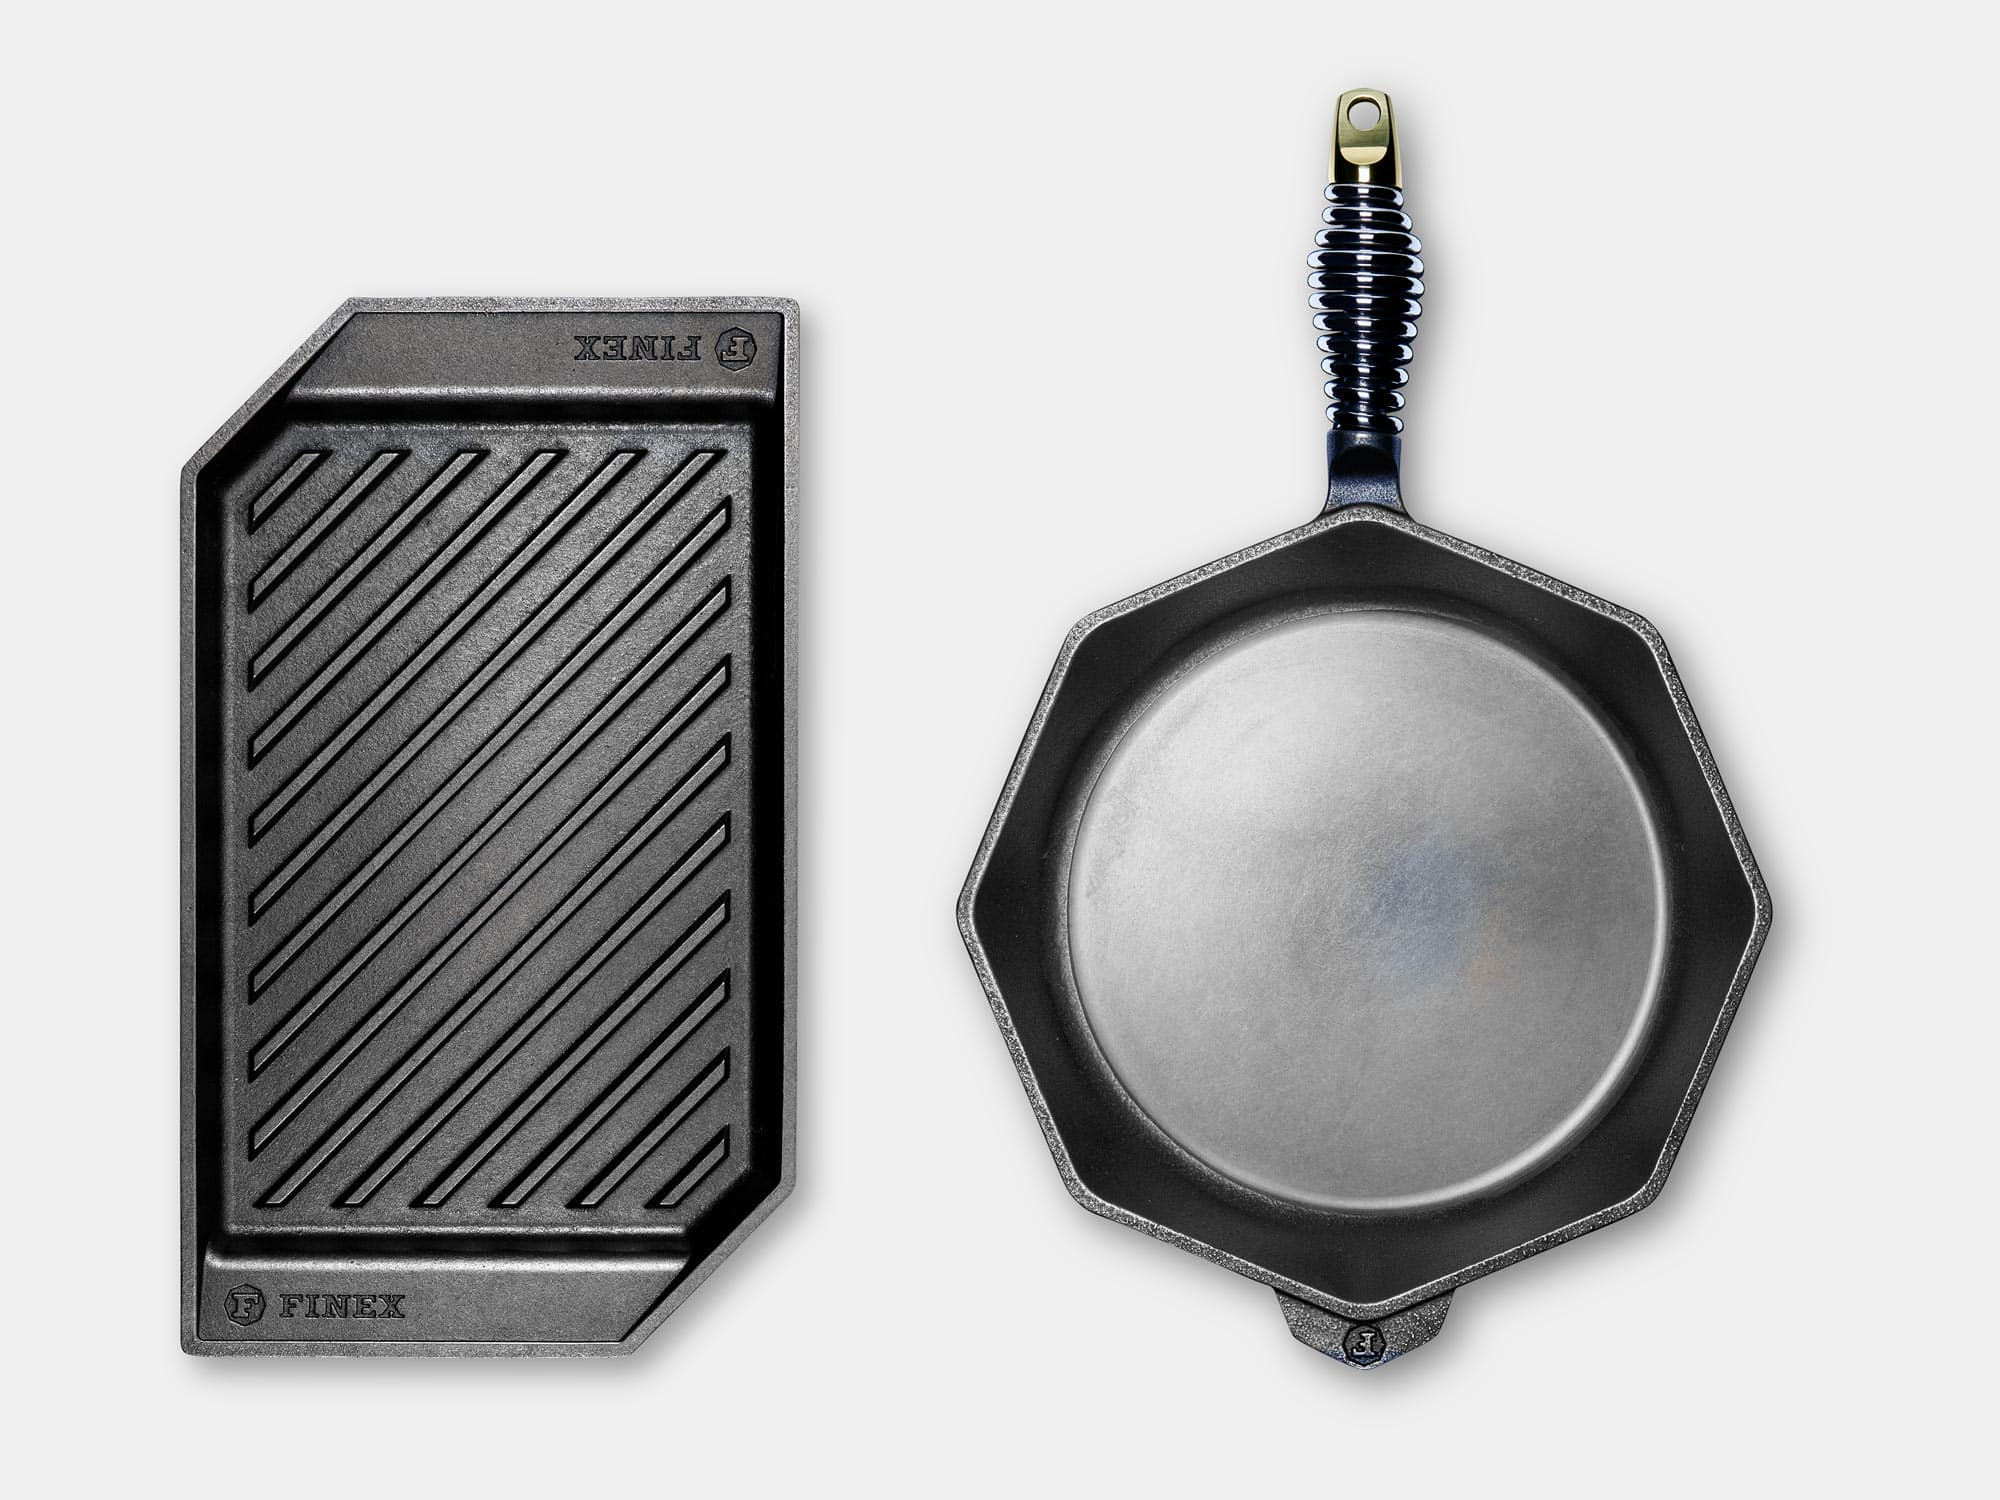 FINEX grill and sear 2-piece starter set